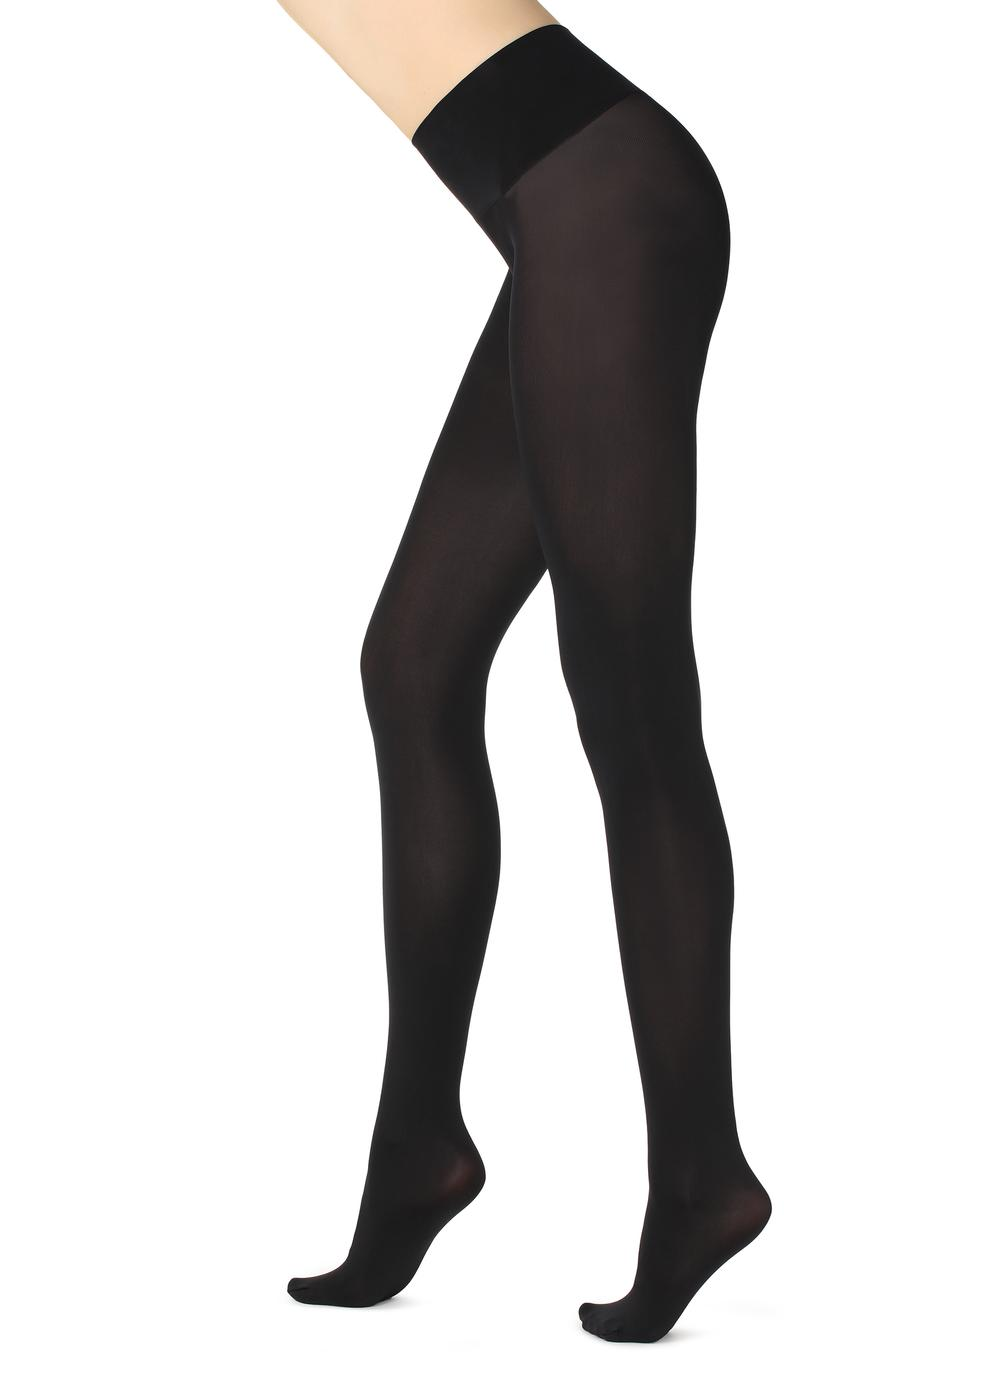 50-Denier Opaque Seamless Invisible Tights